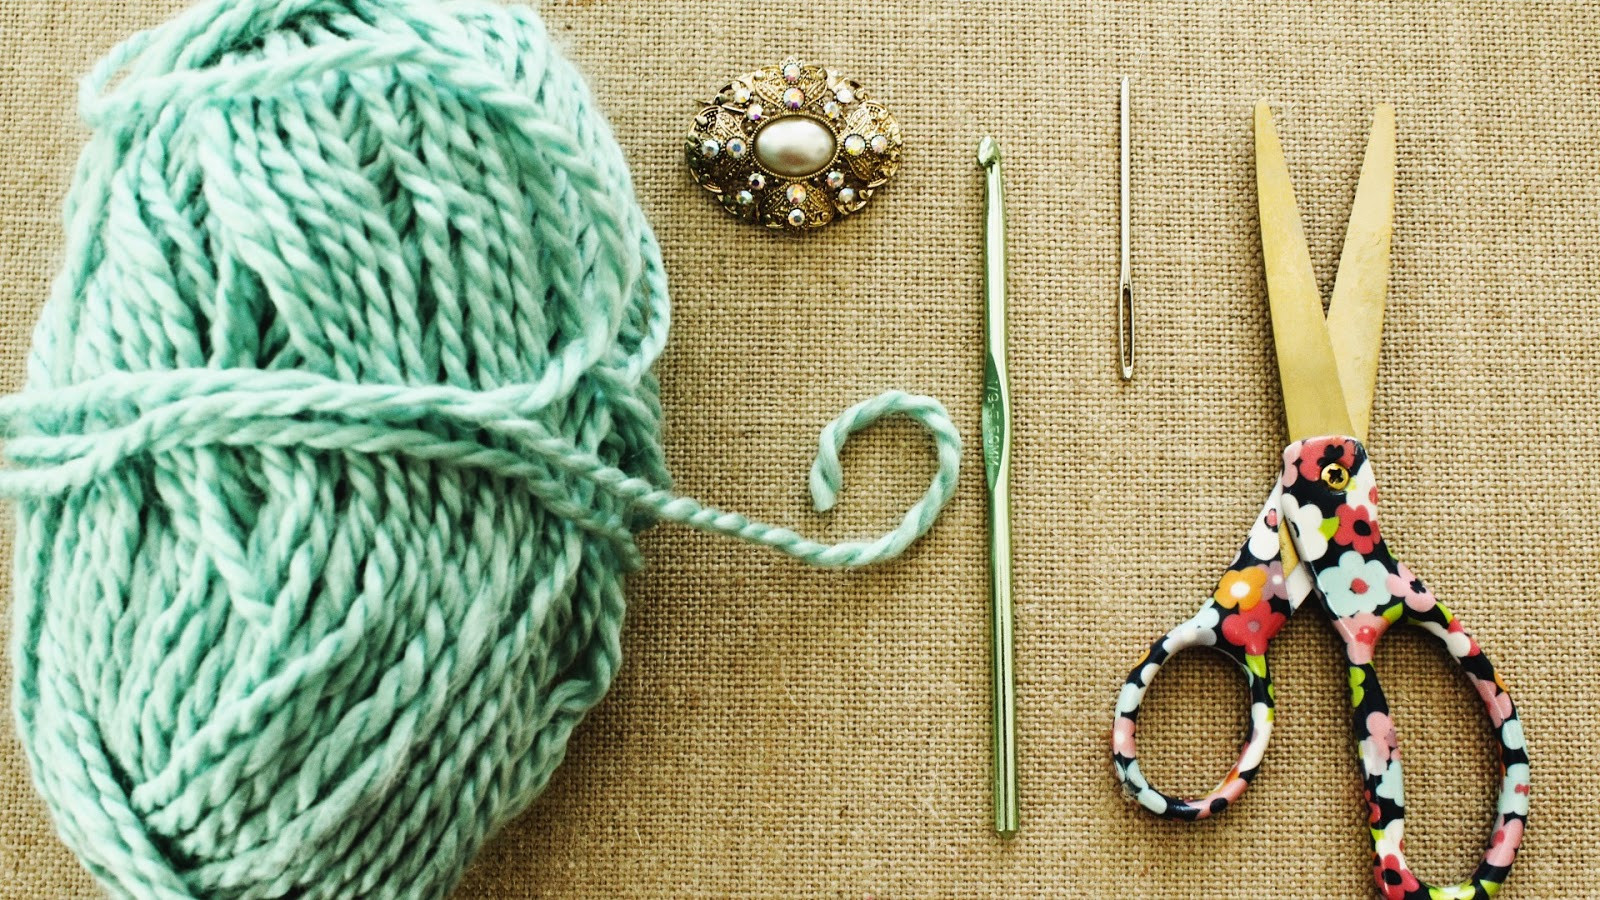 Crochet Hook and Yarn Fresh the Dream Crochet Blog Diy Crochet This Vintage Of Superb 44 Images Crochet Hook and Yarn